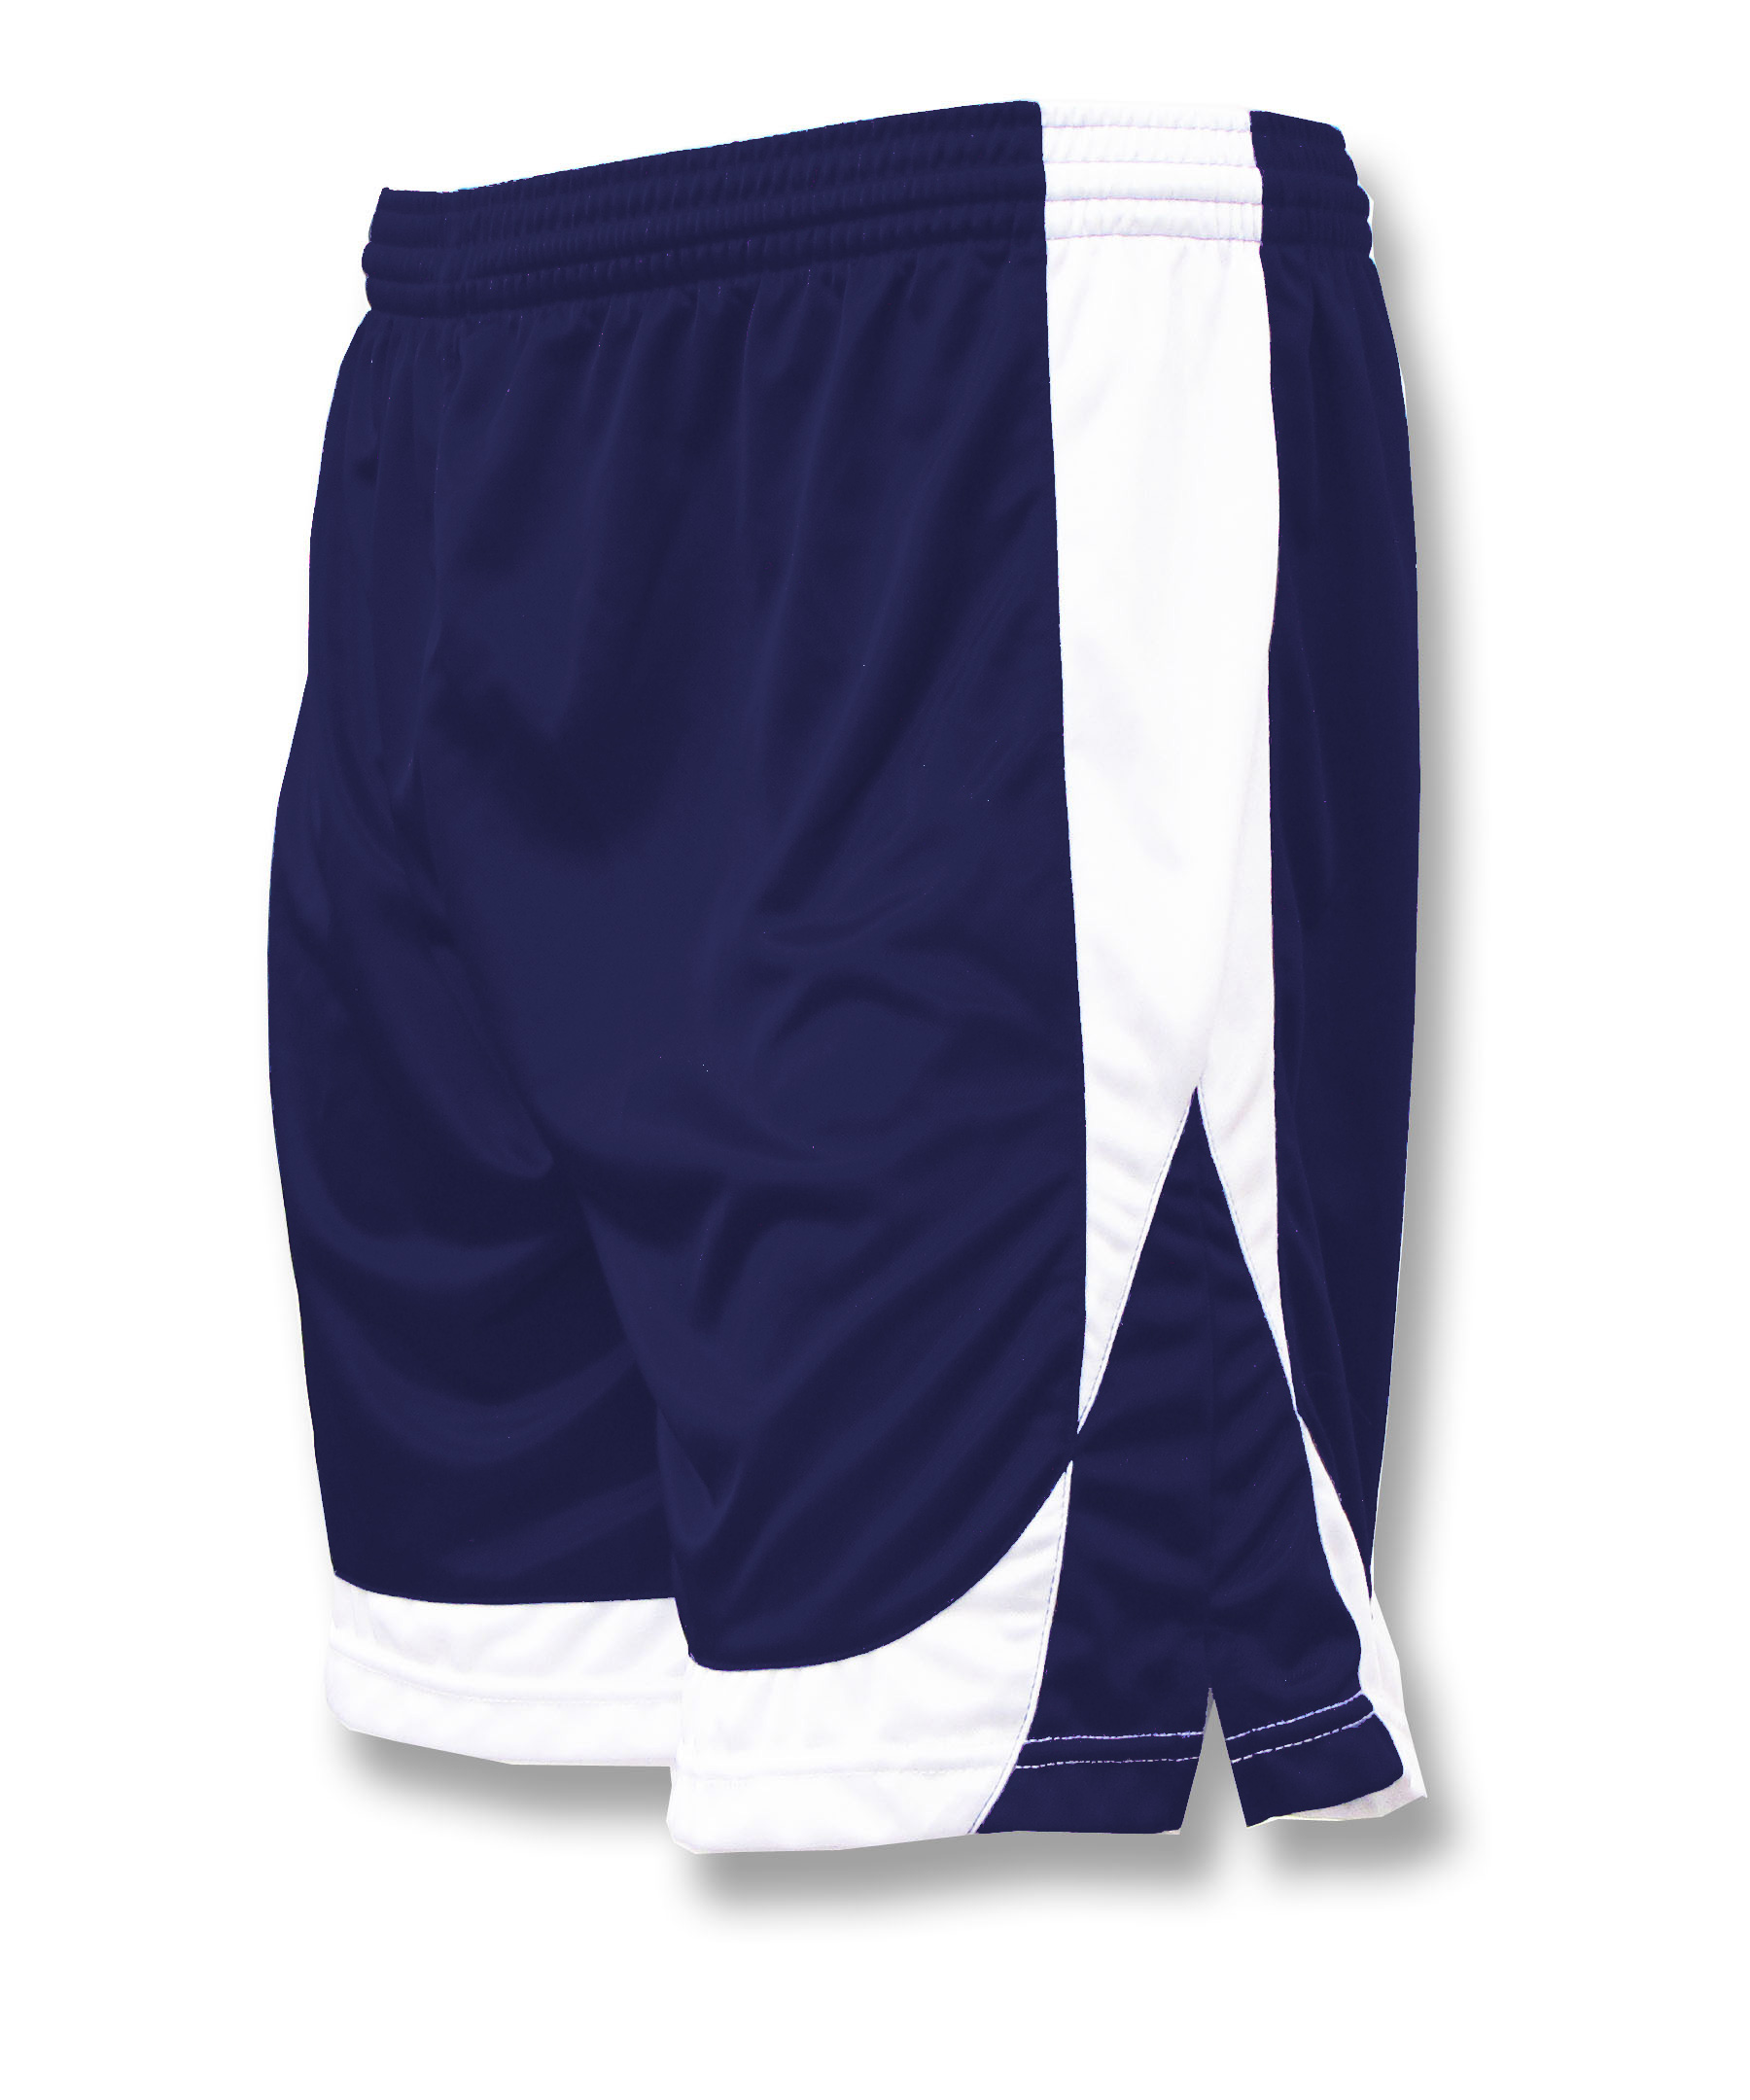 Omega soccer shorts in navy/white by Code Four Athletics